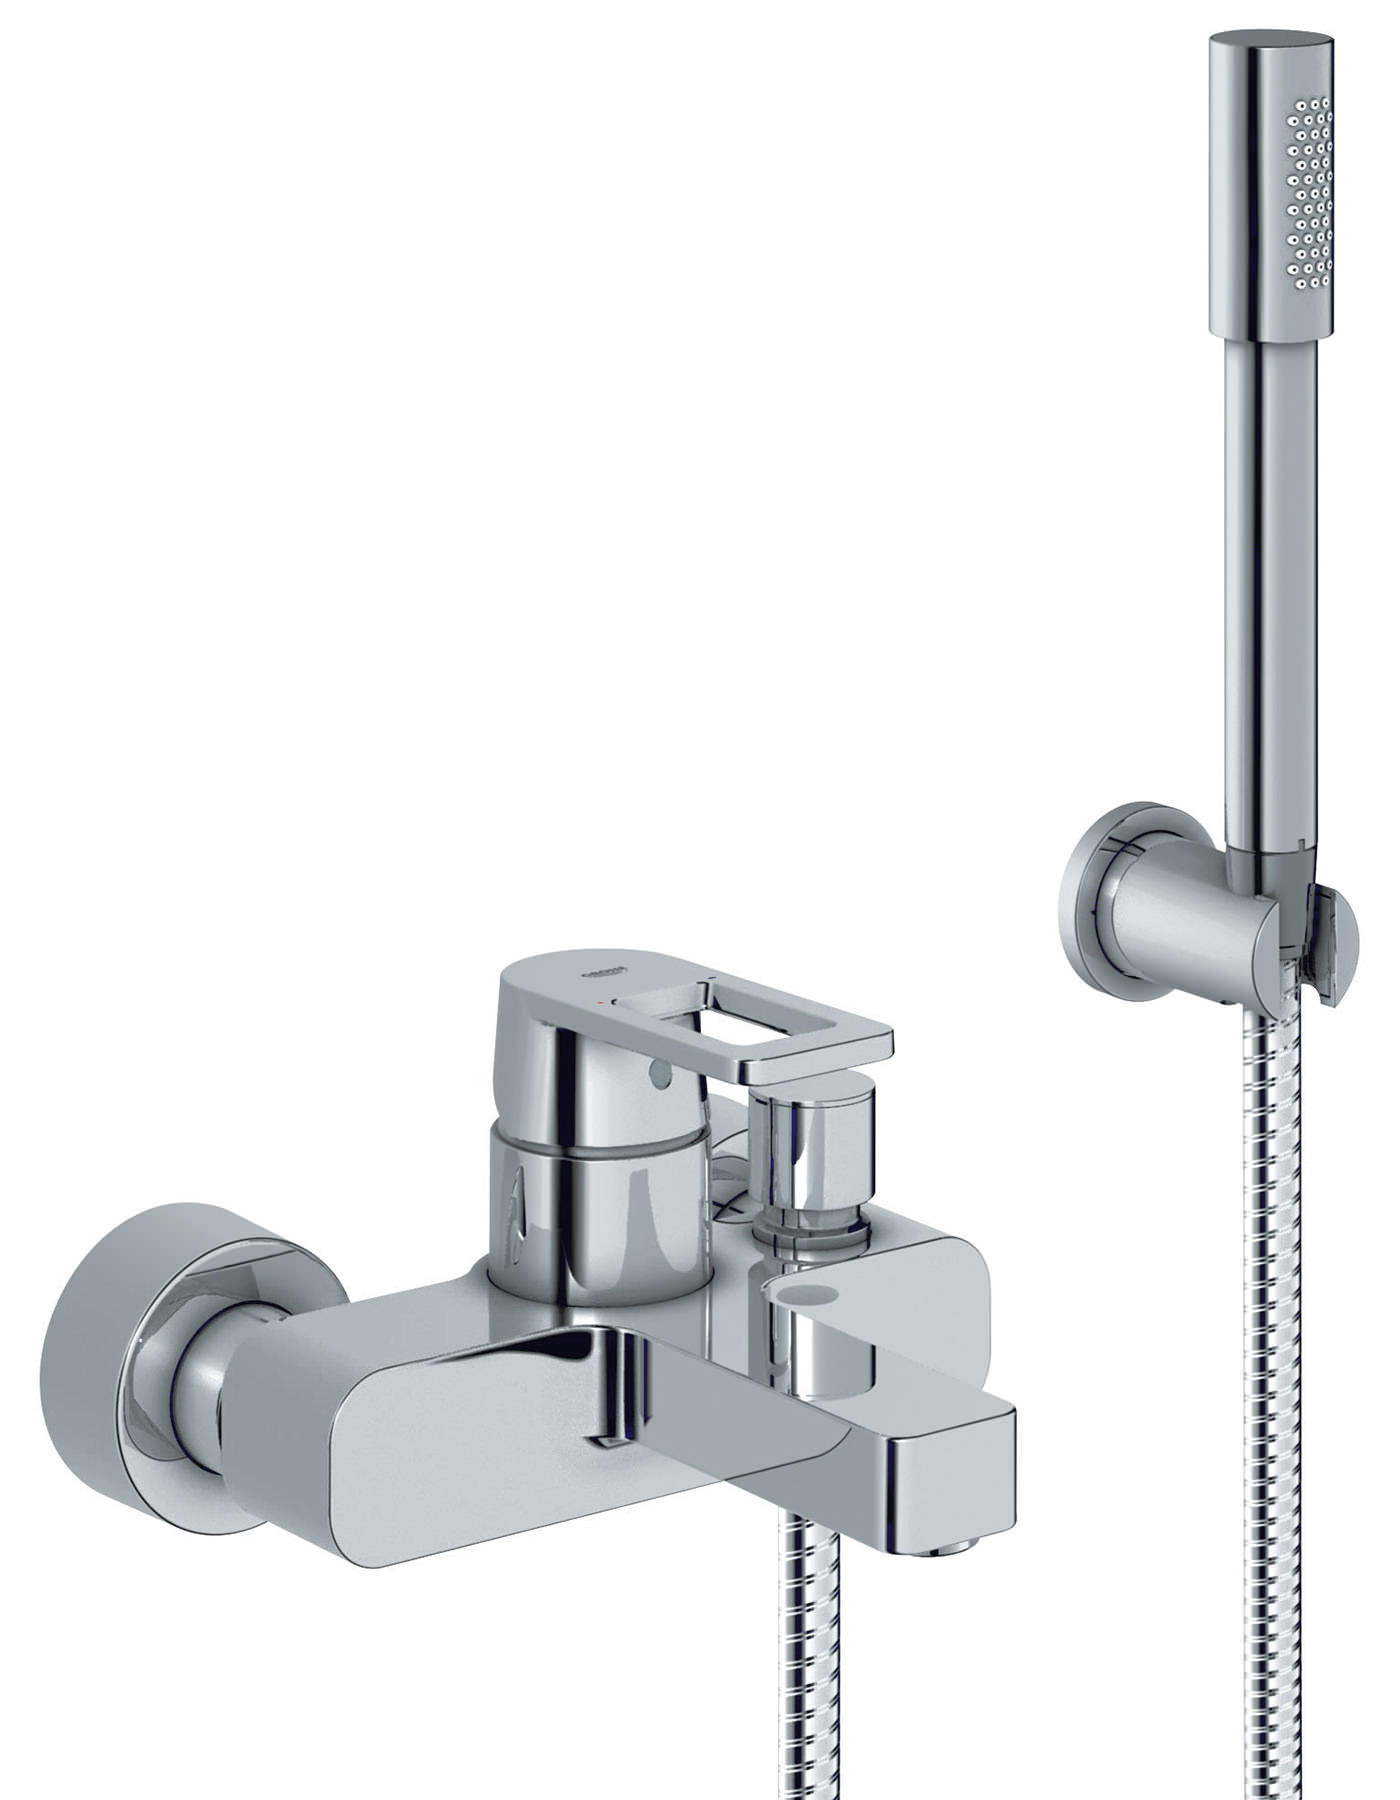 Bath Taps: Grohe Quadra Wall Mounted Bath Shower Mixer Tap With